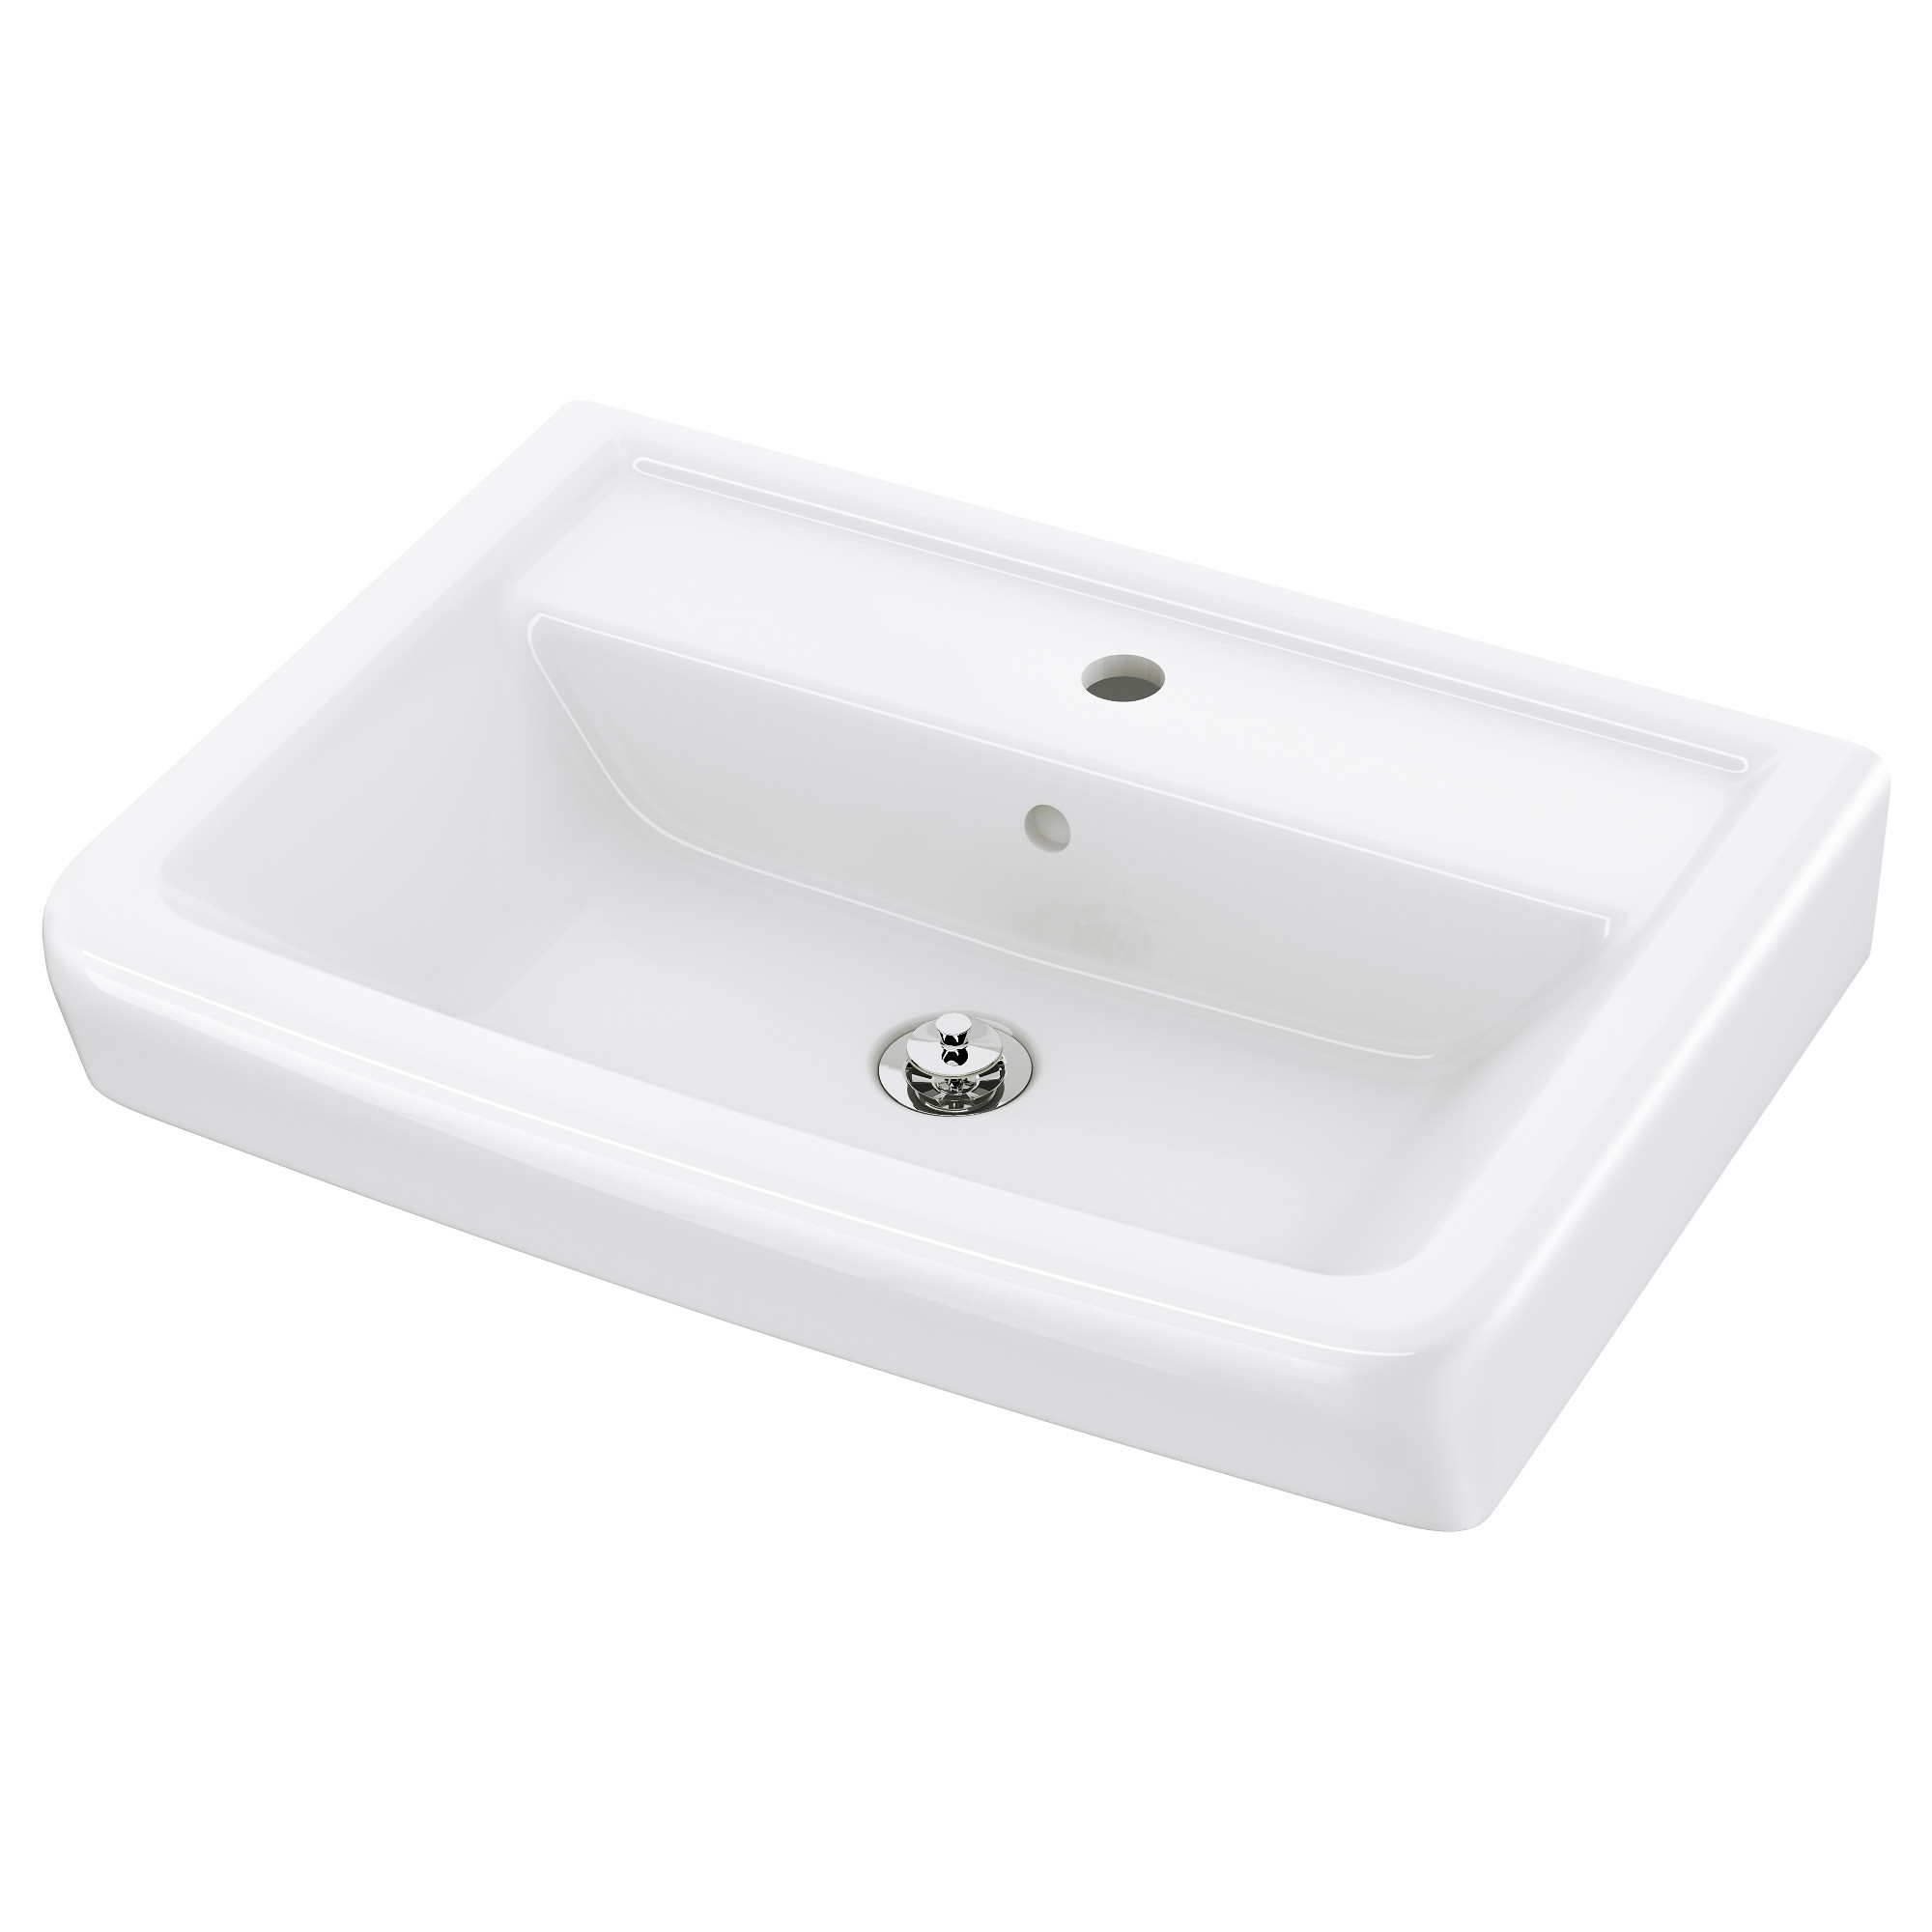 Bathroom Sinks IKEA – Sinks for Bathroom